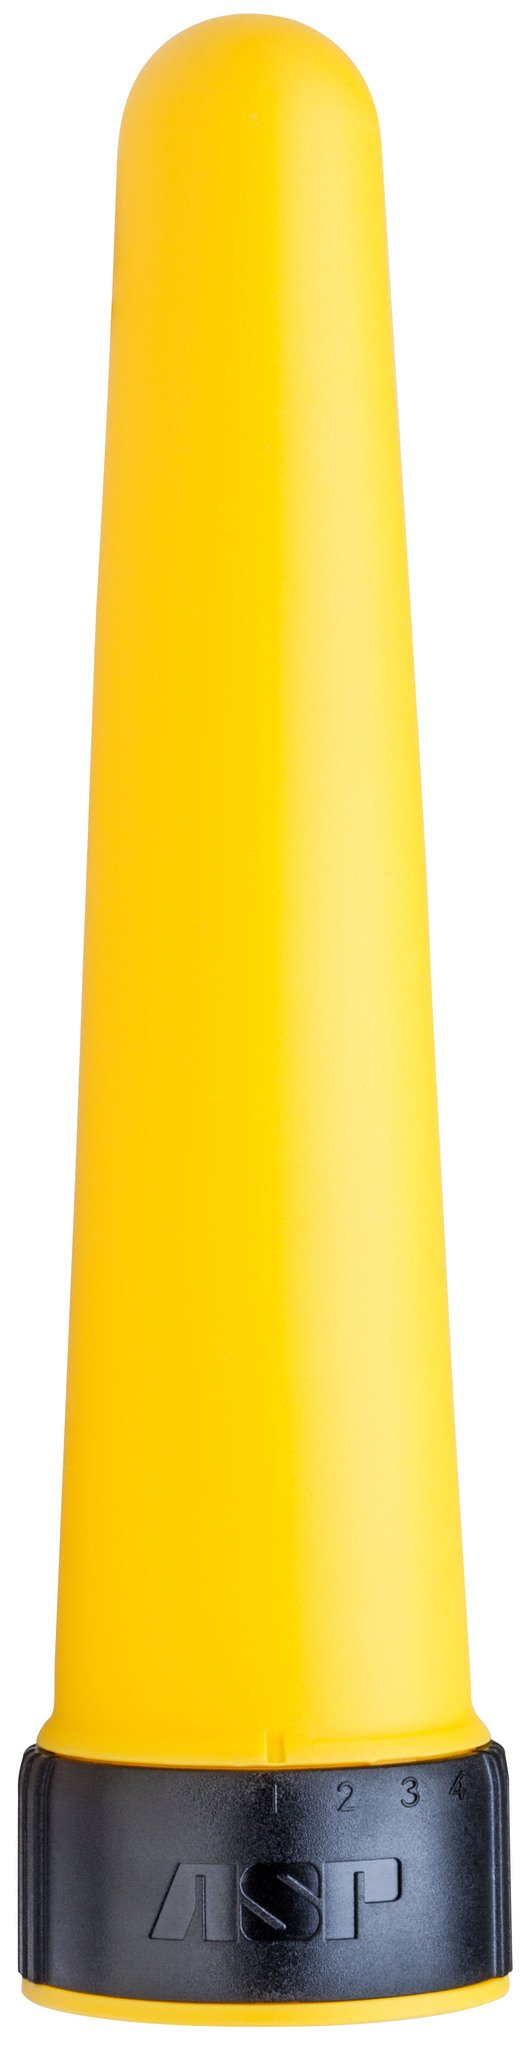 ASP Traffic Management and Emergency Wand, Compatible with Triad and Turbo Flashlights, Yellow